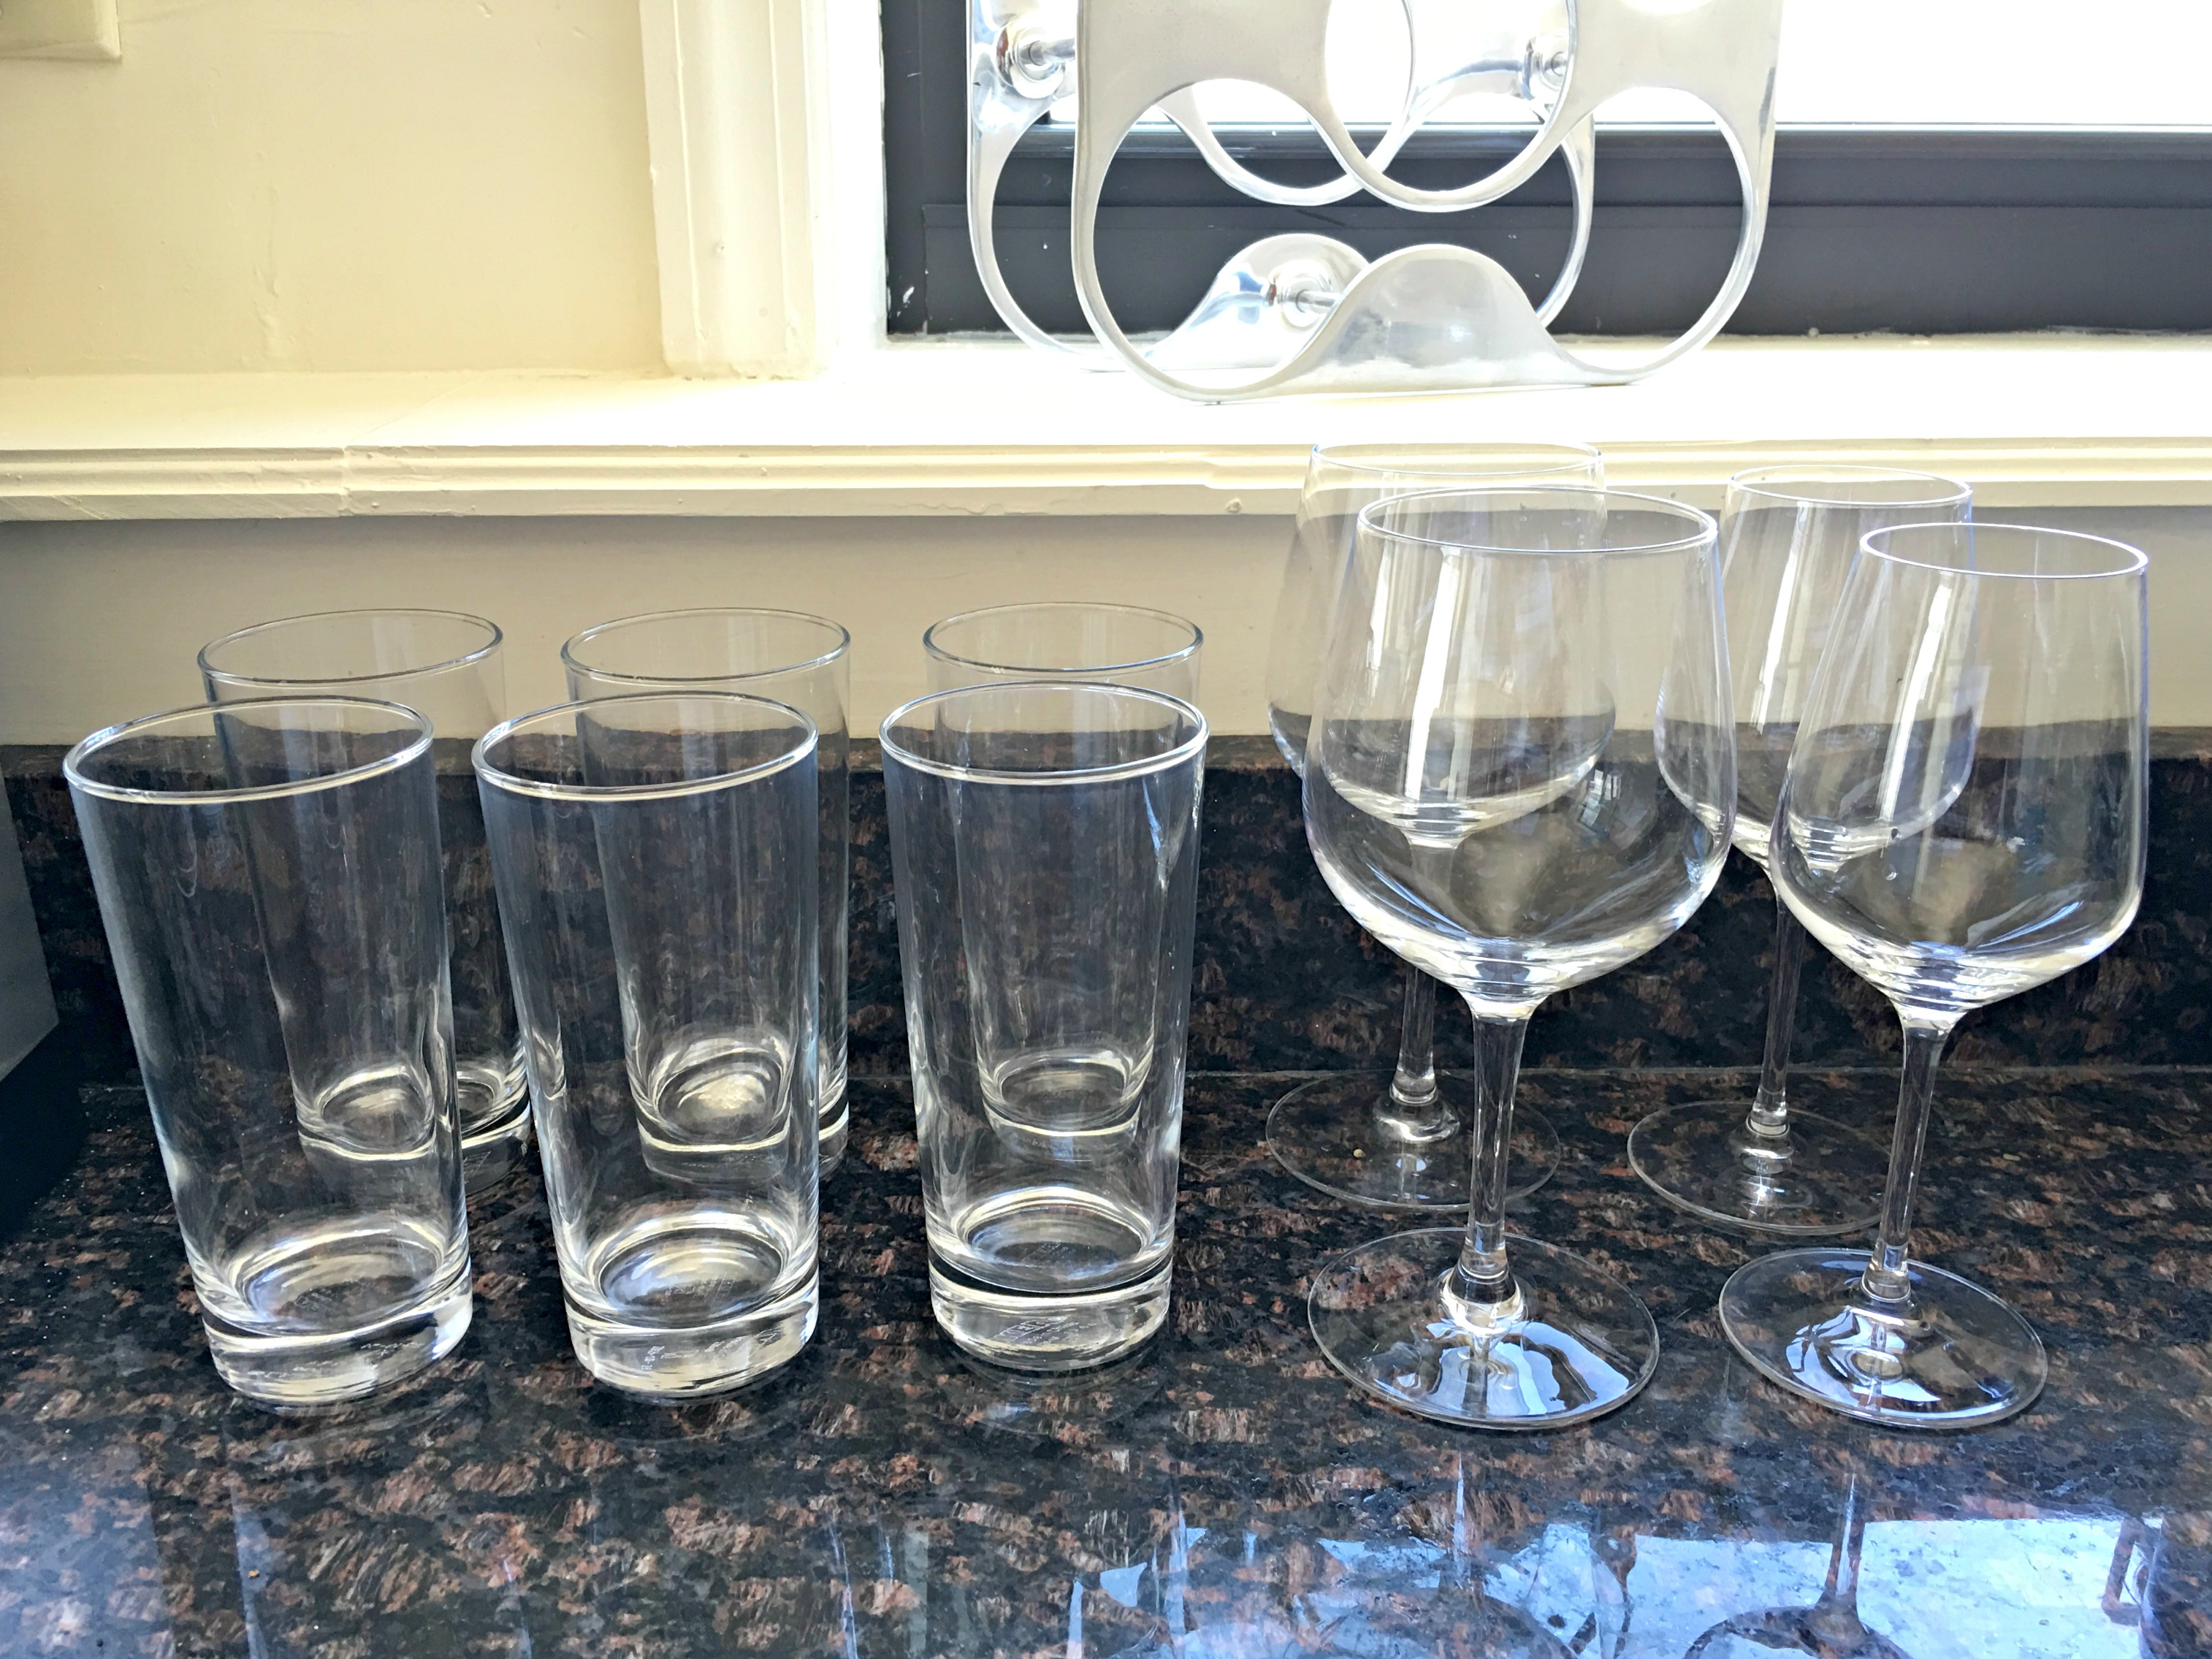 IKEA glasses and wine glasses